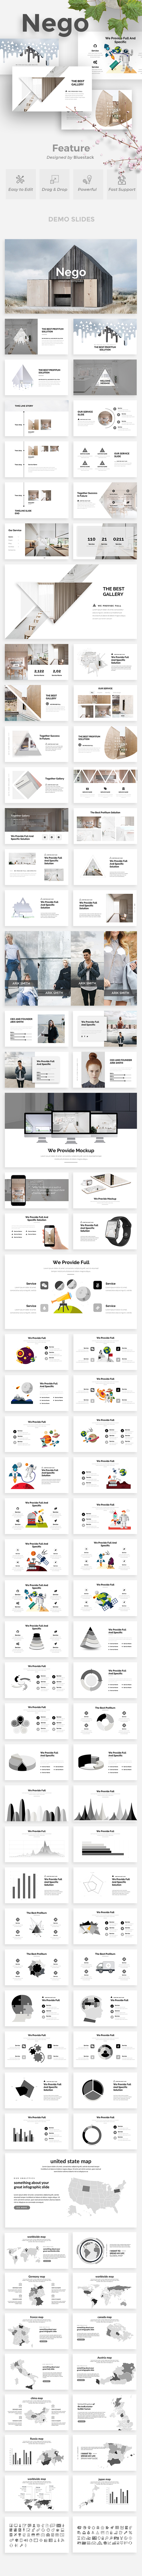 Nego Creative Powerpoint Template - Creative PowerPoint Templates